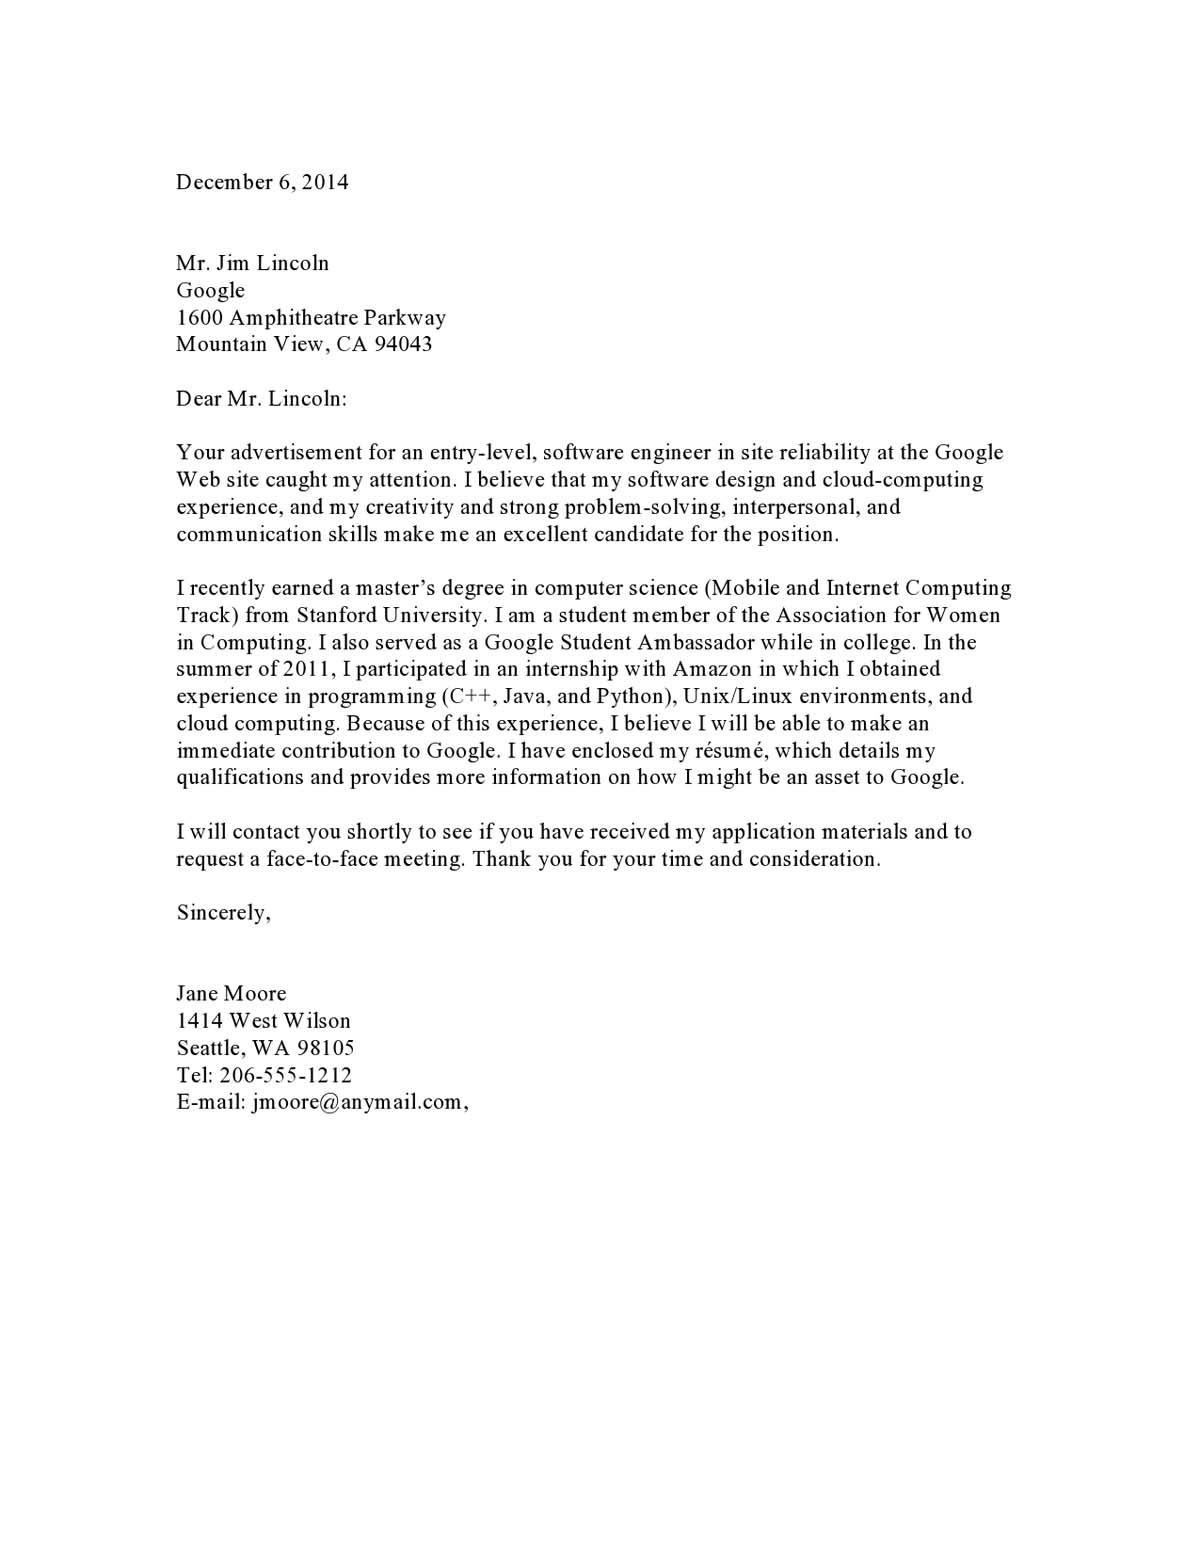 004 Fascinating Cover Letter For Internship Template Highest Quality  Free Engineering Example SummerFull